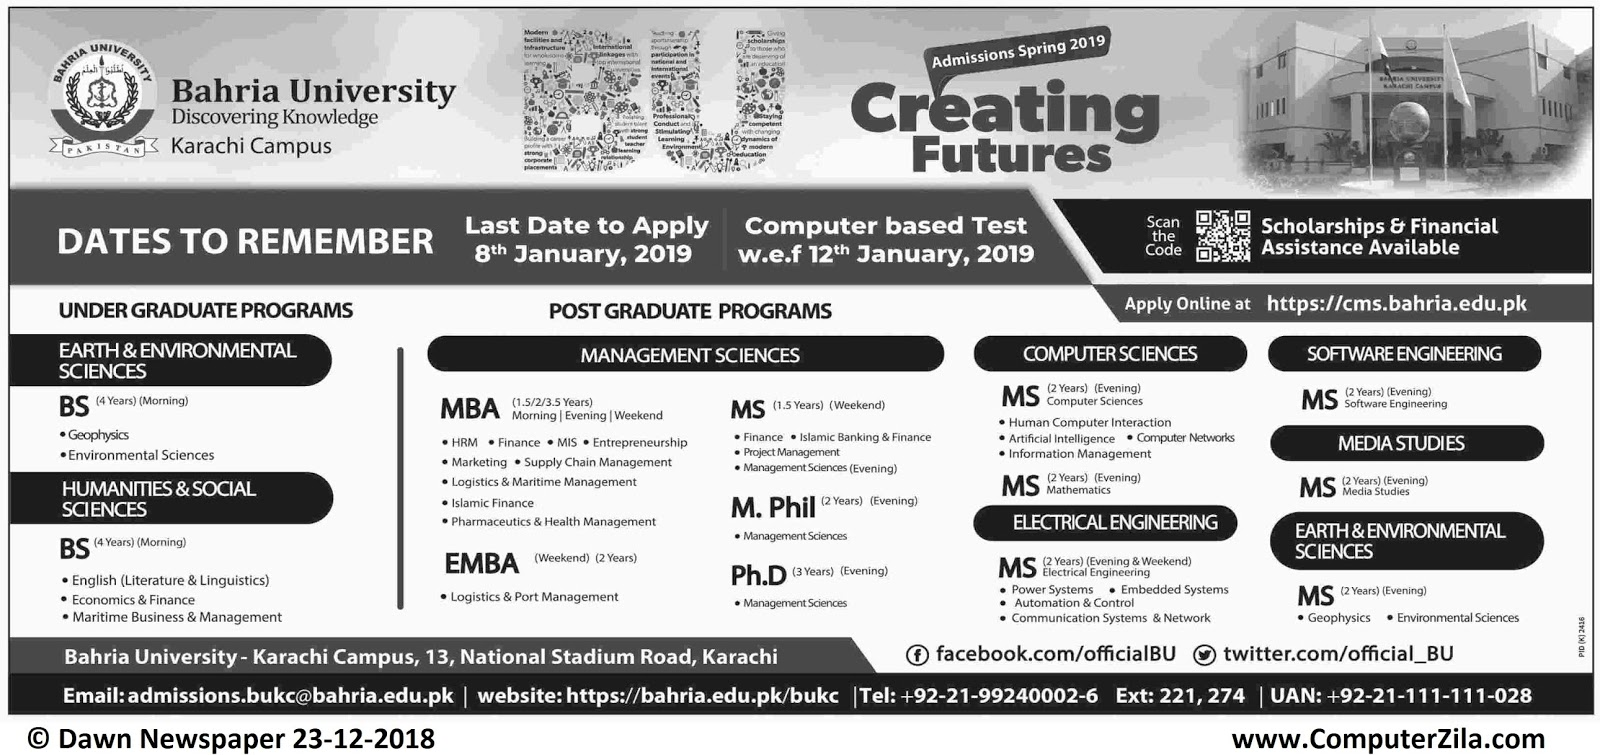 Admissions Open For Spring 2019 At BAHRIA Karachi Campus